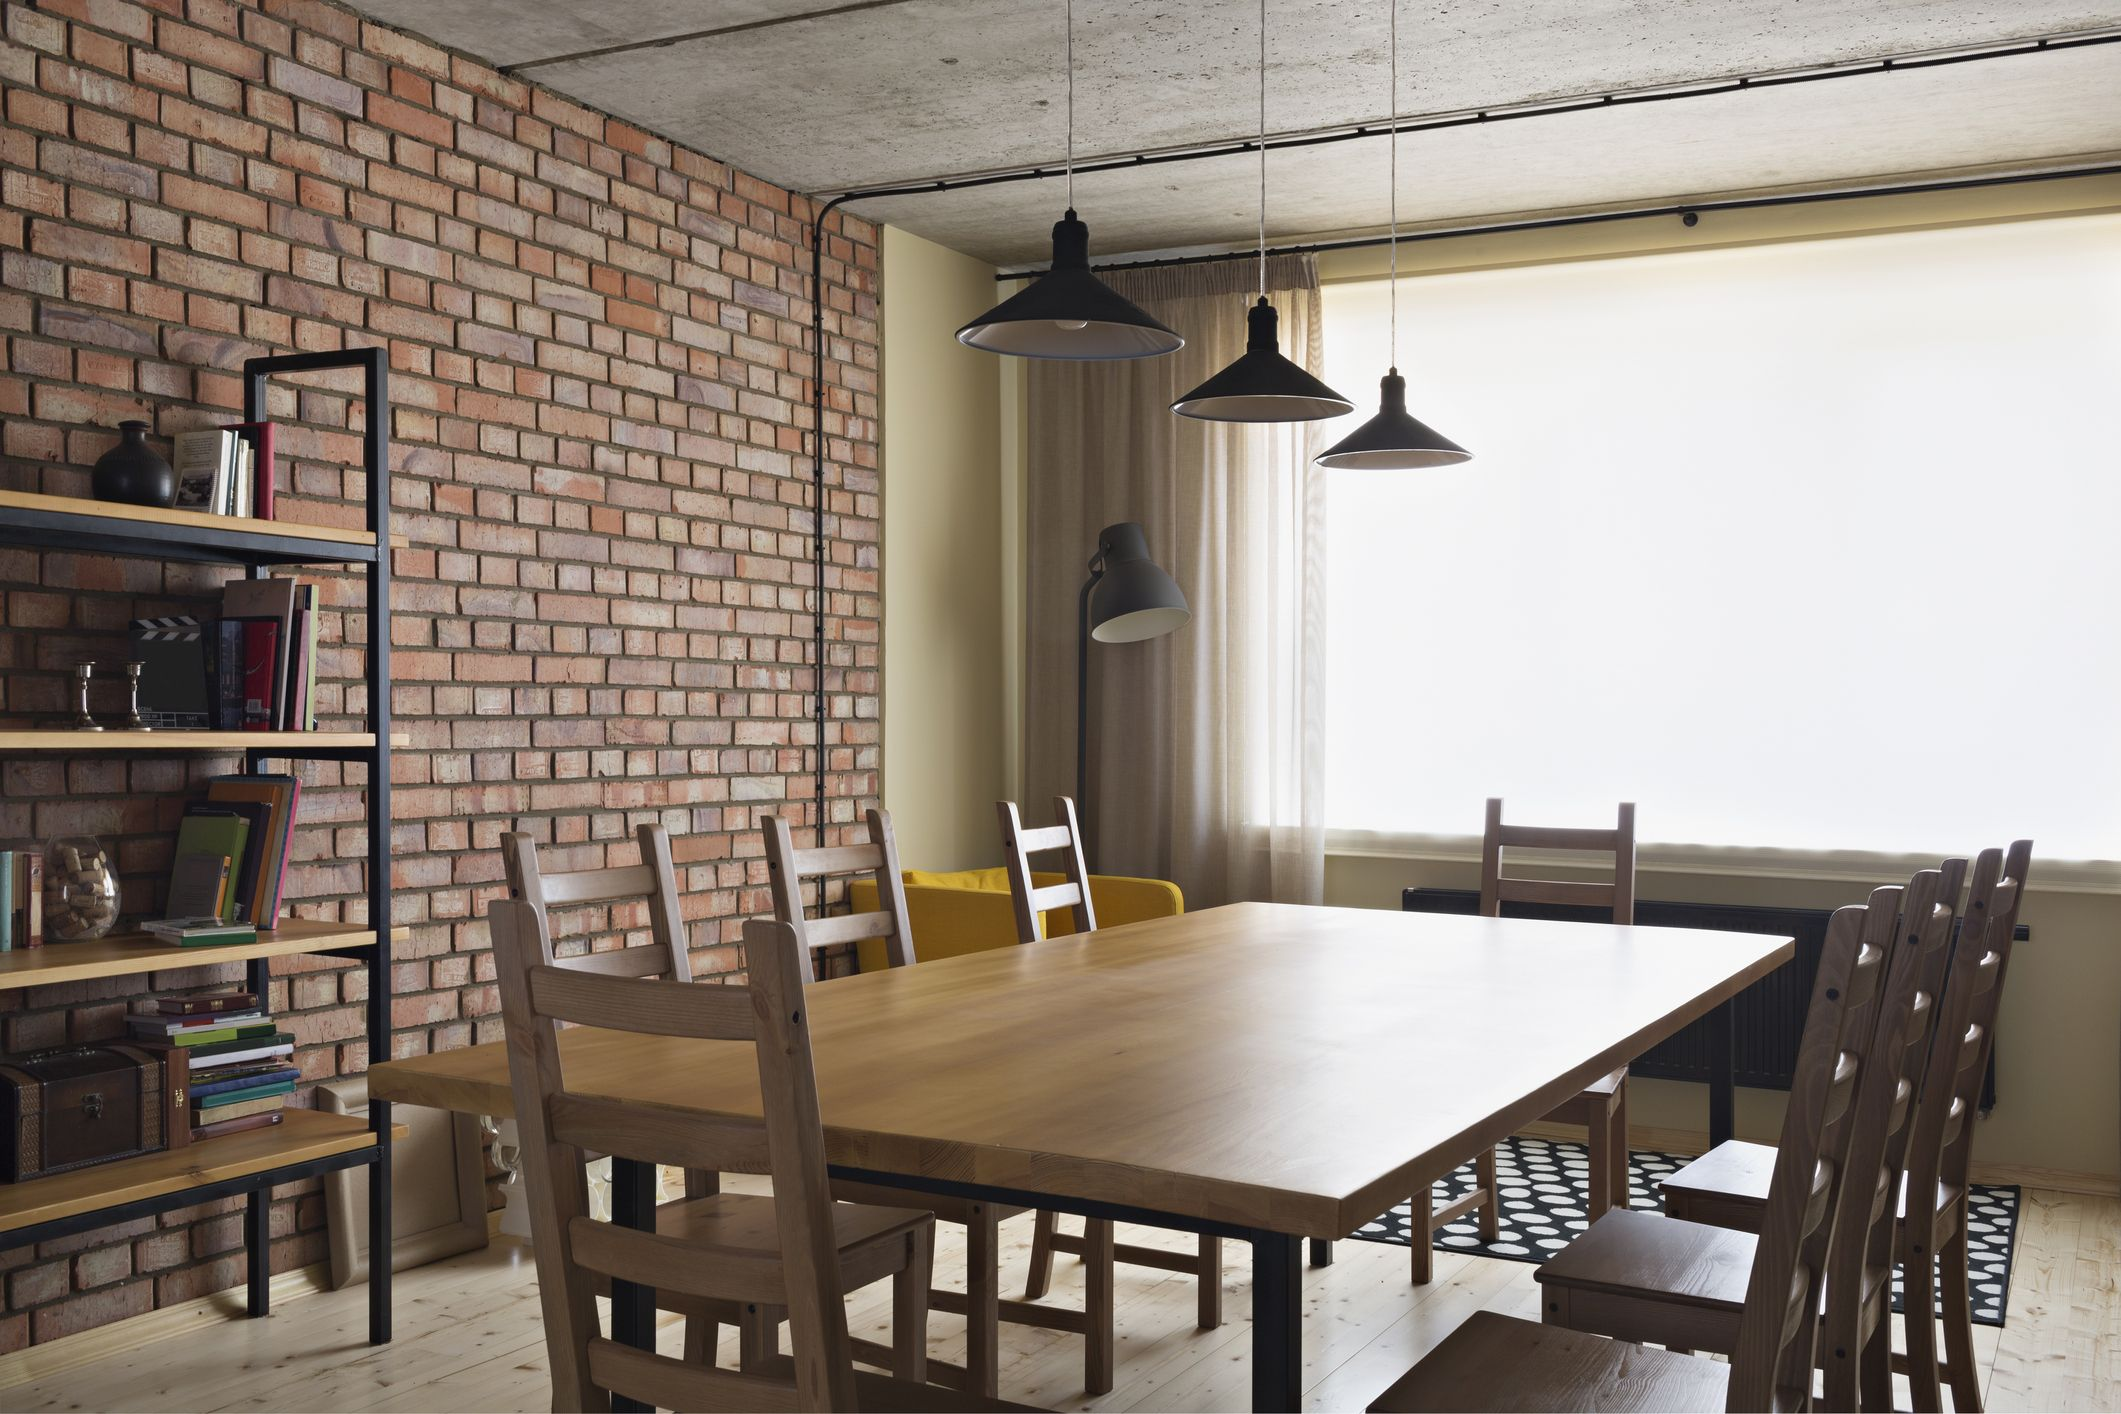 & How to achieve a brick finish in your home